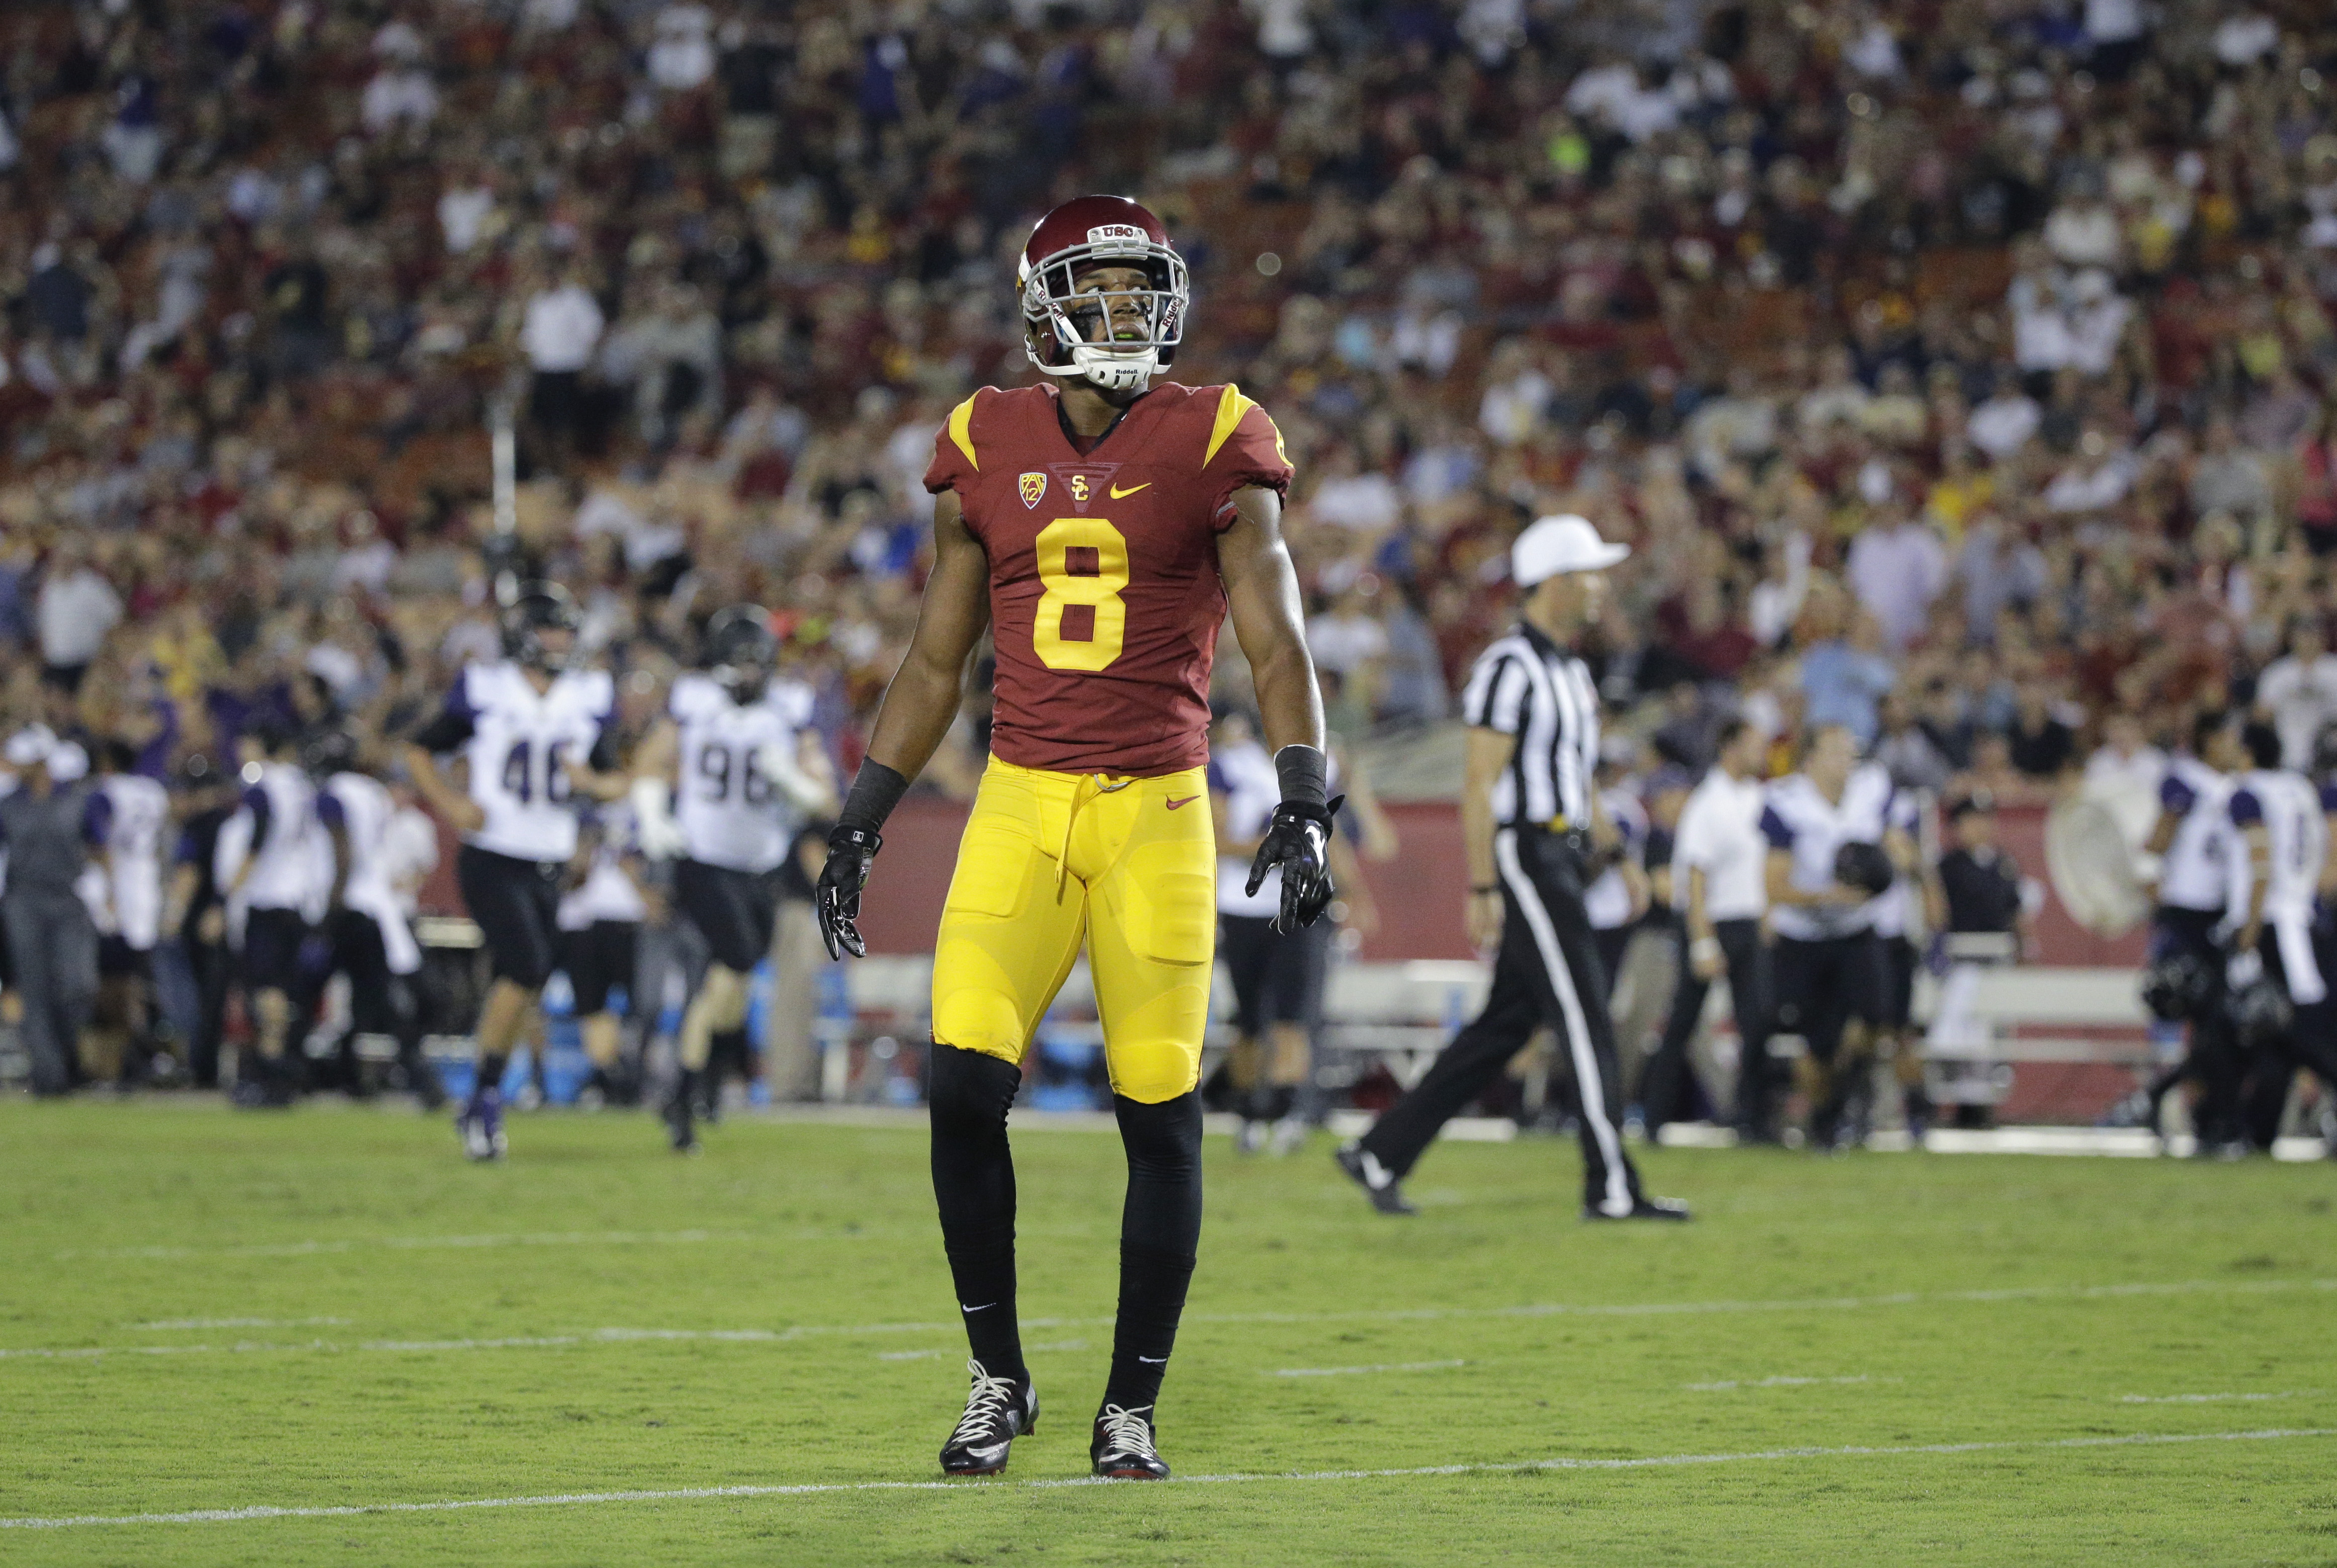 Southern California's Iman Marshall looks at the scoreboard as Washington players celebrate a touchdown by Joshua Perkins during the second half of an NCAA college football game, Thursday, Oct. 8, 2015, in Los Angeles. Washington won 17-12. (AP Photo/Jae